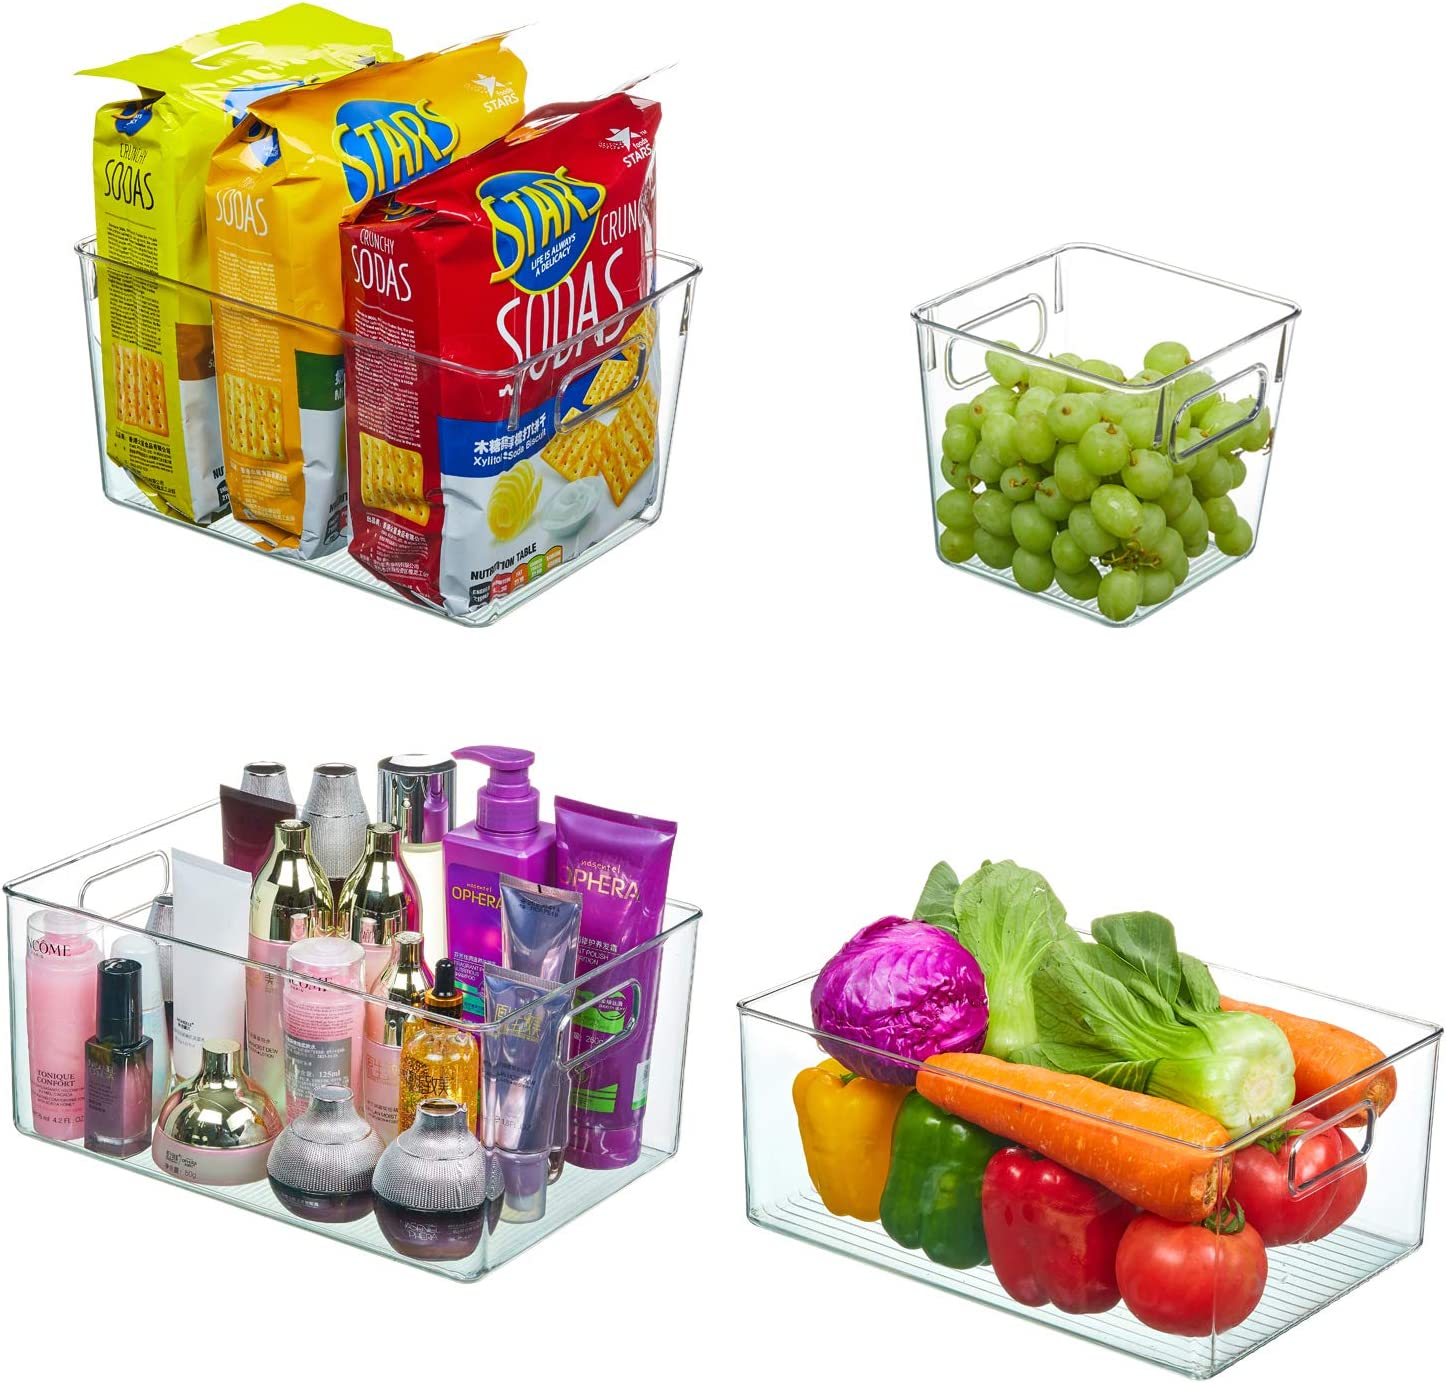 3unshine 4-Piece Set Refrigerator Storage Bins, Transparent Kitchen Food Pantry Cabinet, Storage Box with Handle-Organizing Tool, Suitable for Kitchen, Refrigerator, Cabinet, Refrigerator, Office